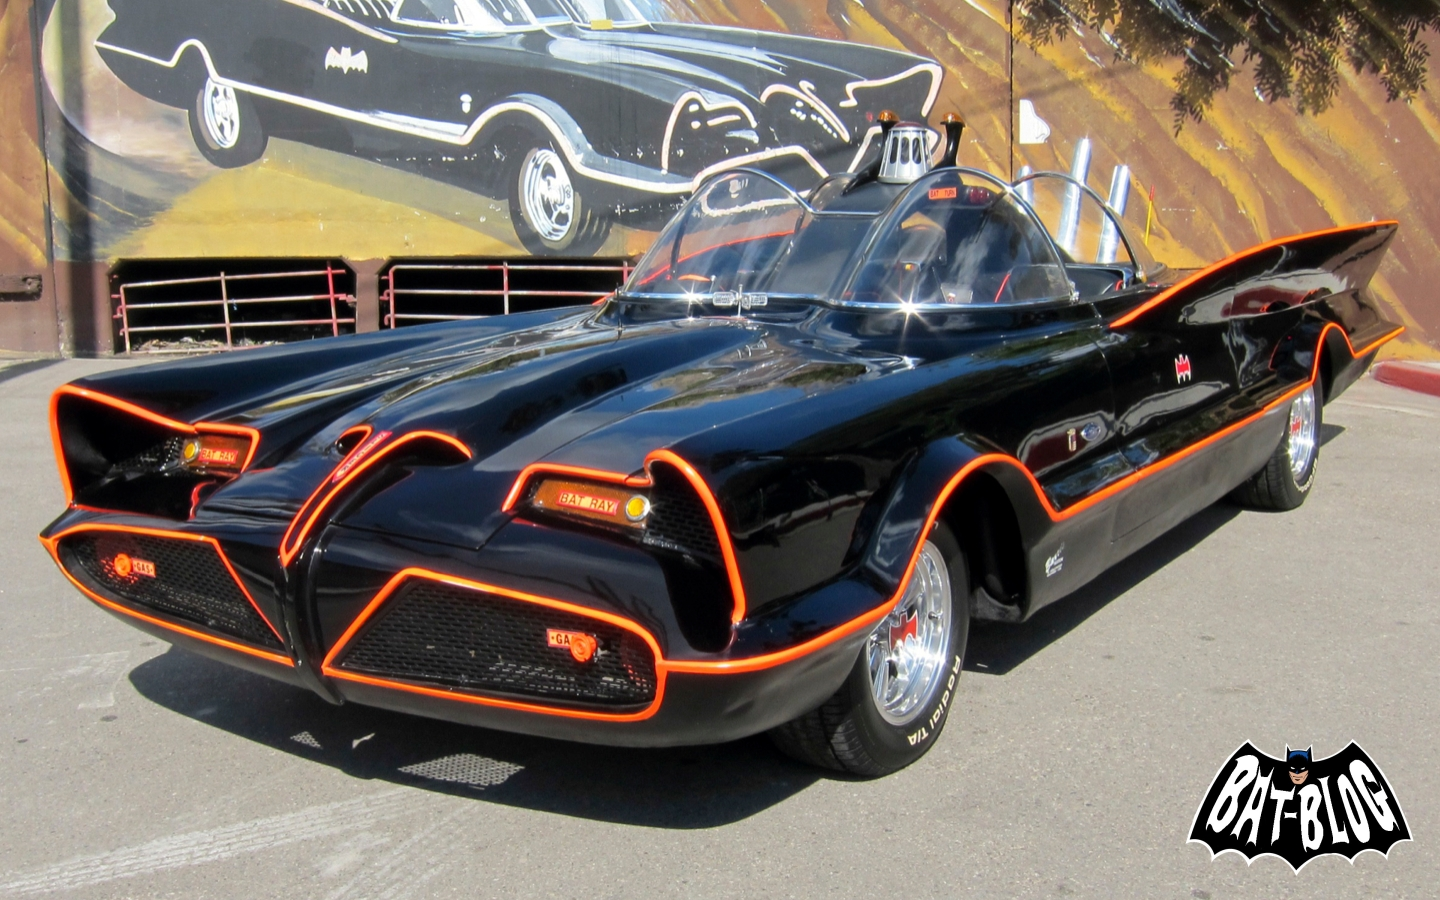 http://2.bp.blogspot.com/-Pvx-JtRW7PE/UP1-hDHpb2I/AAAAAAAAZL8/elUz6hXPWT0/s1600/george-barris-1966-batmobile-auction.jpg